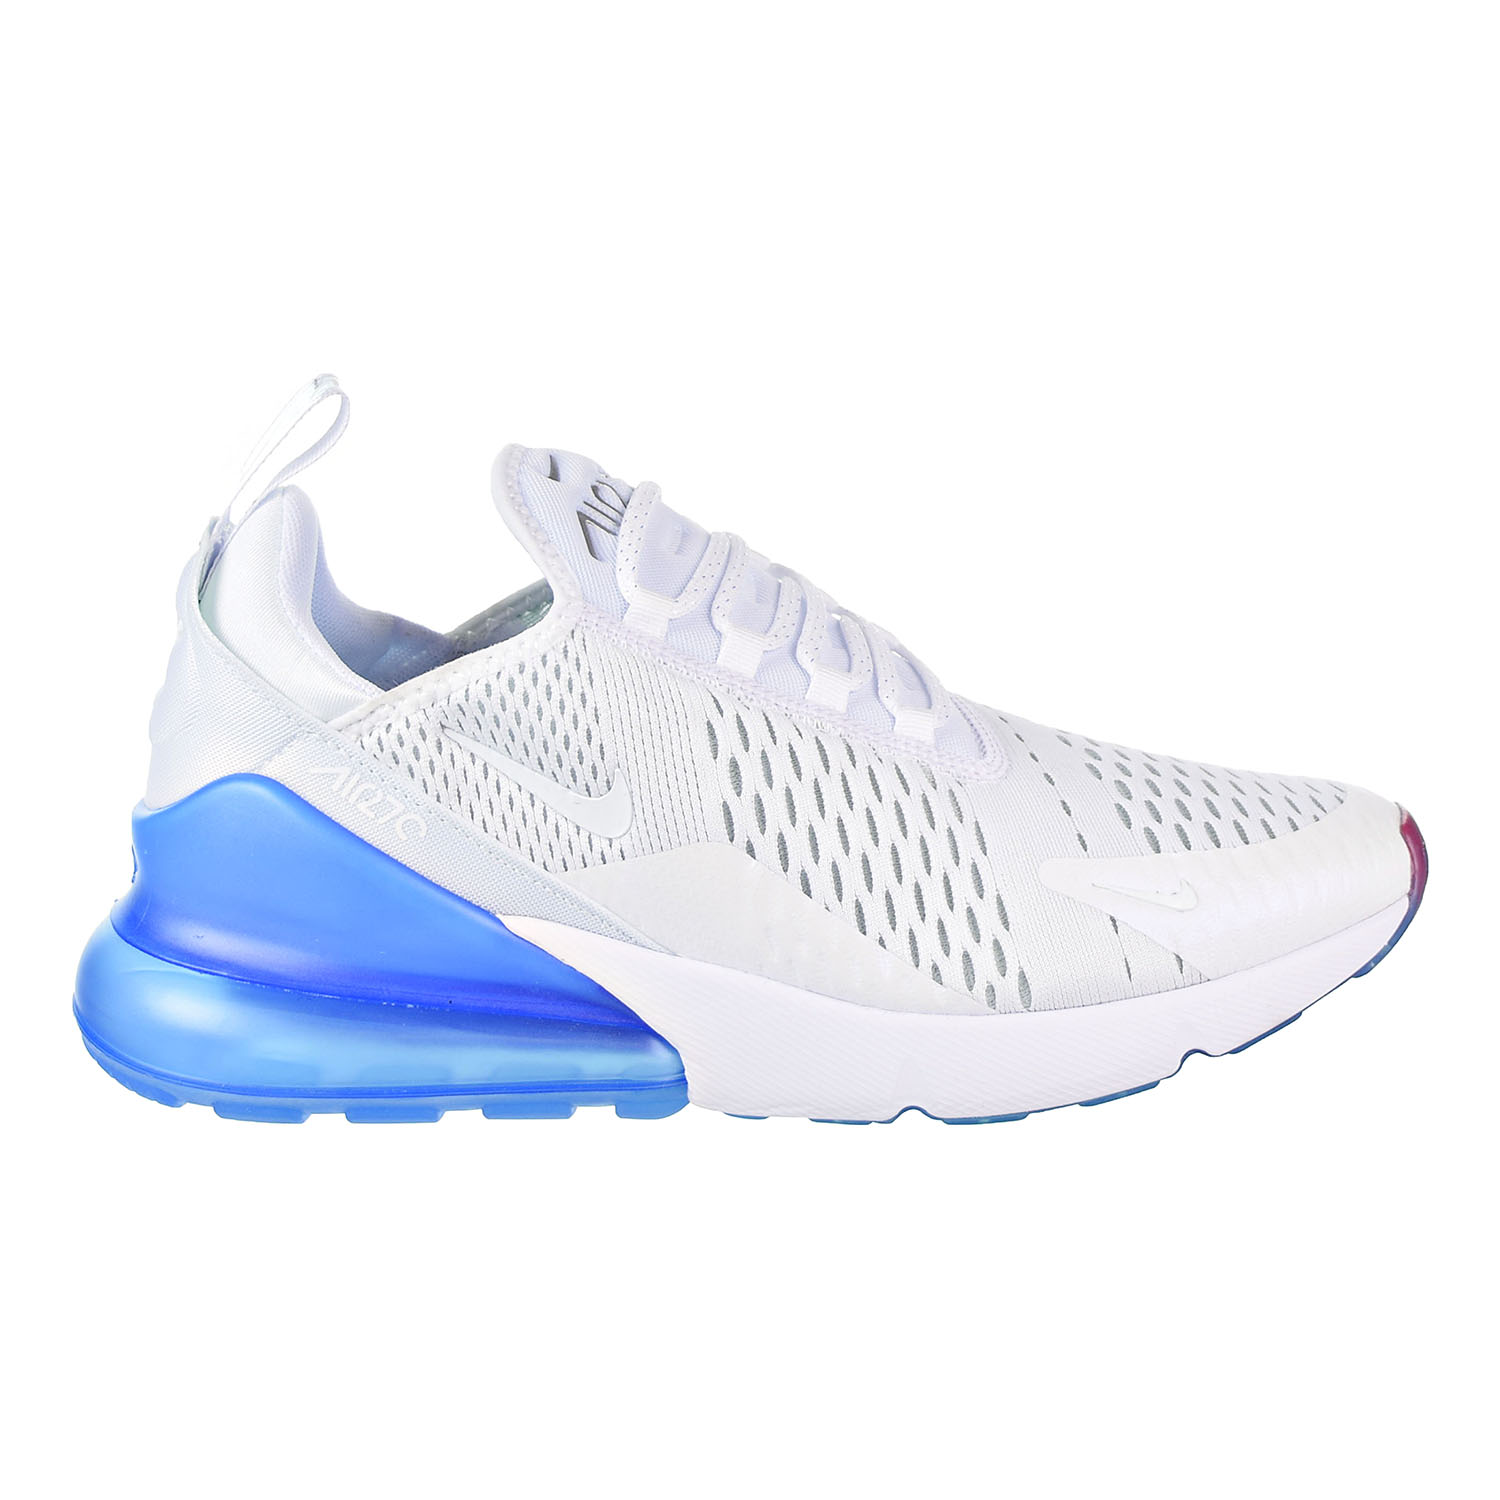 new style 7a59f 00de0 Details about Nike Air Max 270 Men s Shoes White Metallic Silver AQ7982-100